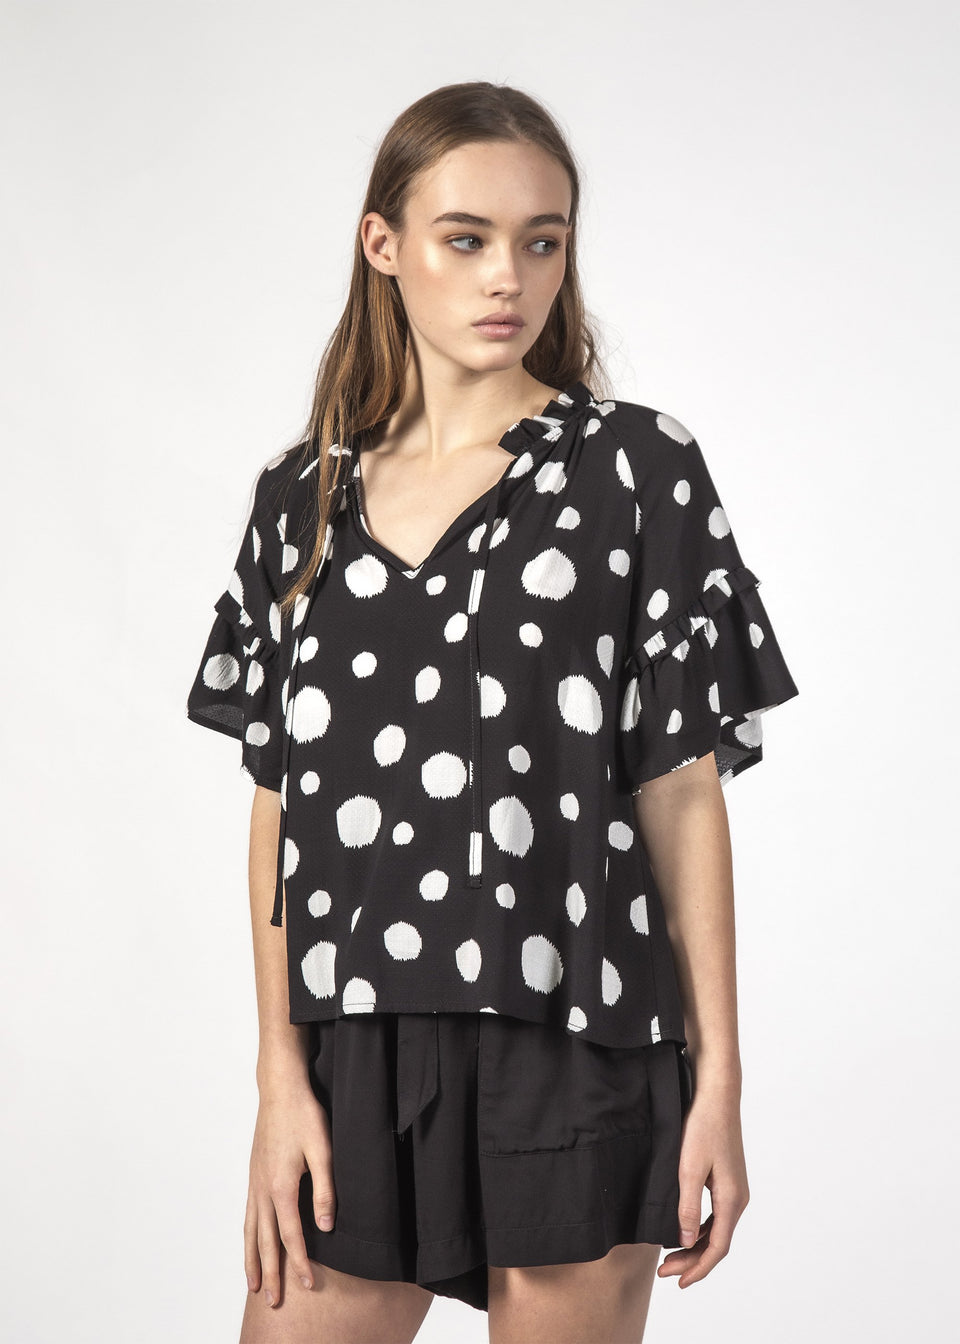 Thing Thing Eve Top Black Dotty - Stencil